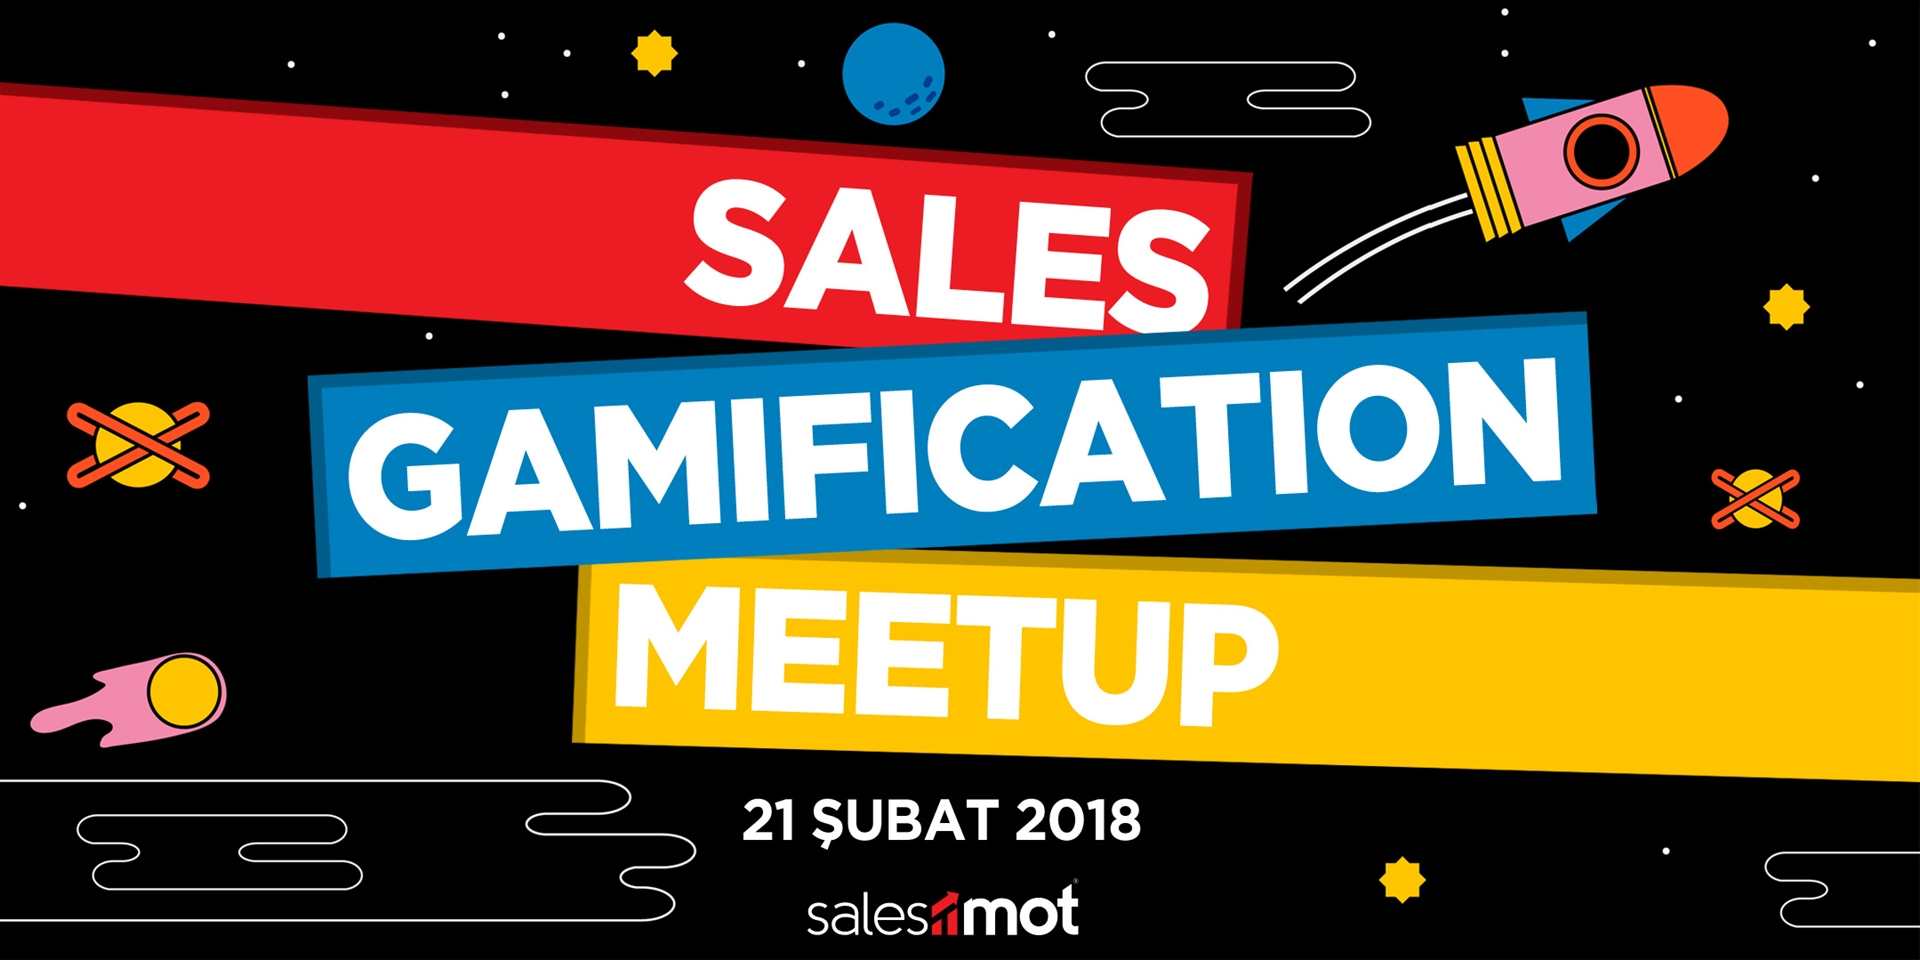 Sales Gamification Meetup - 21 Şubat